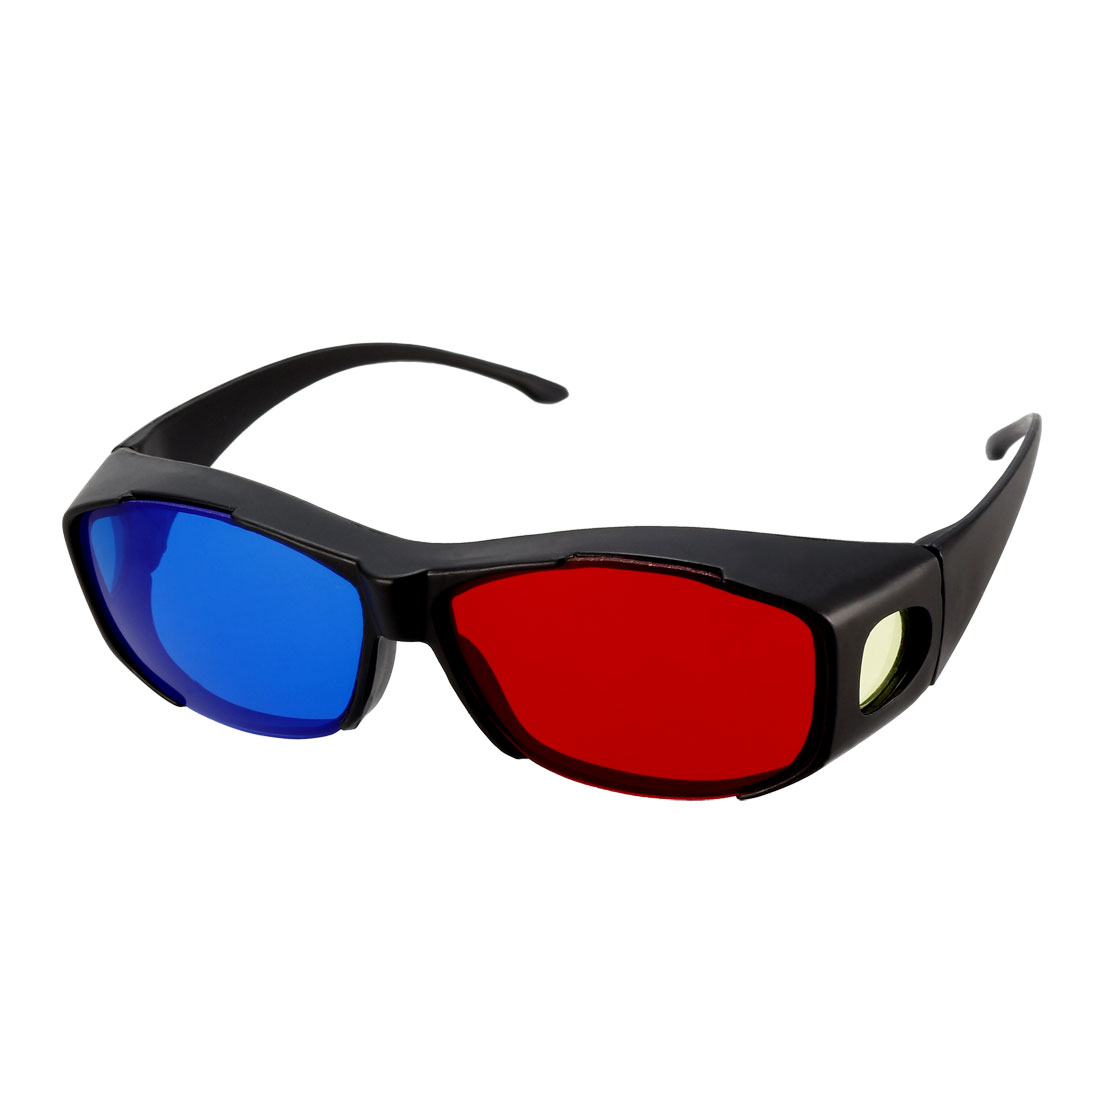 Red-Blue 3D Glasses 3D Visoin Glasses for Red-Blue Format Movie/Picture 5pcs